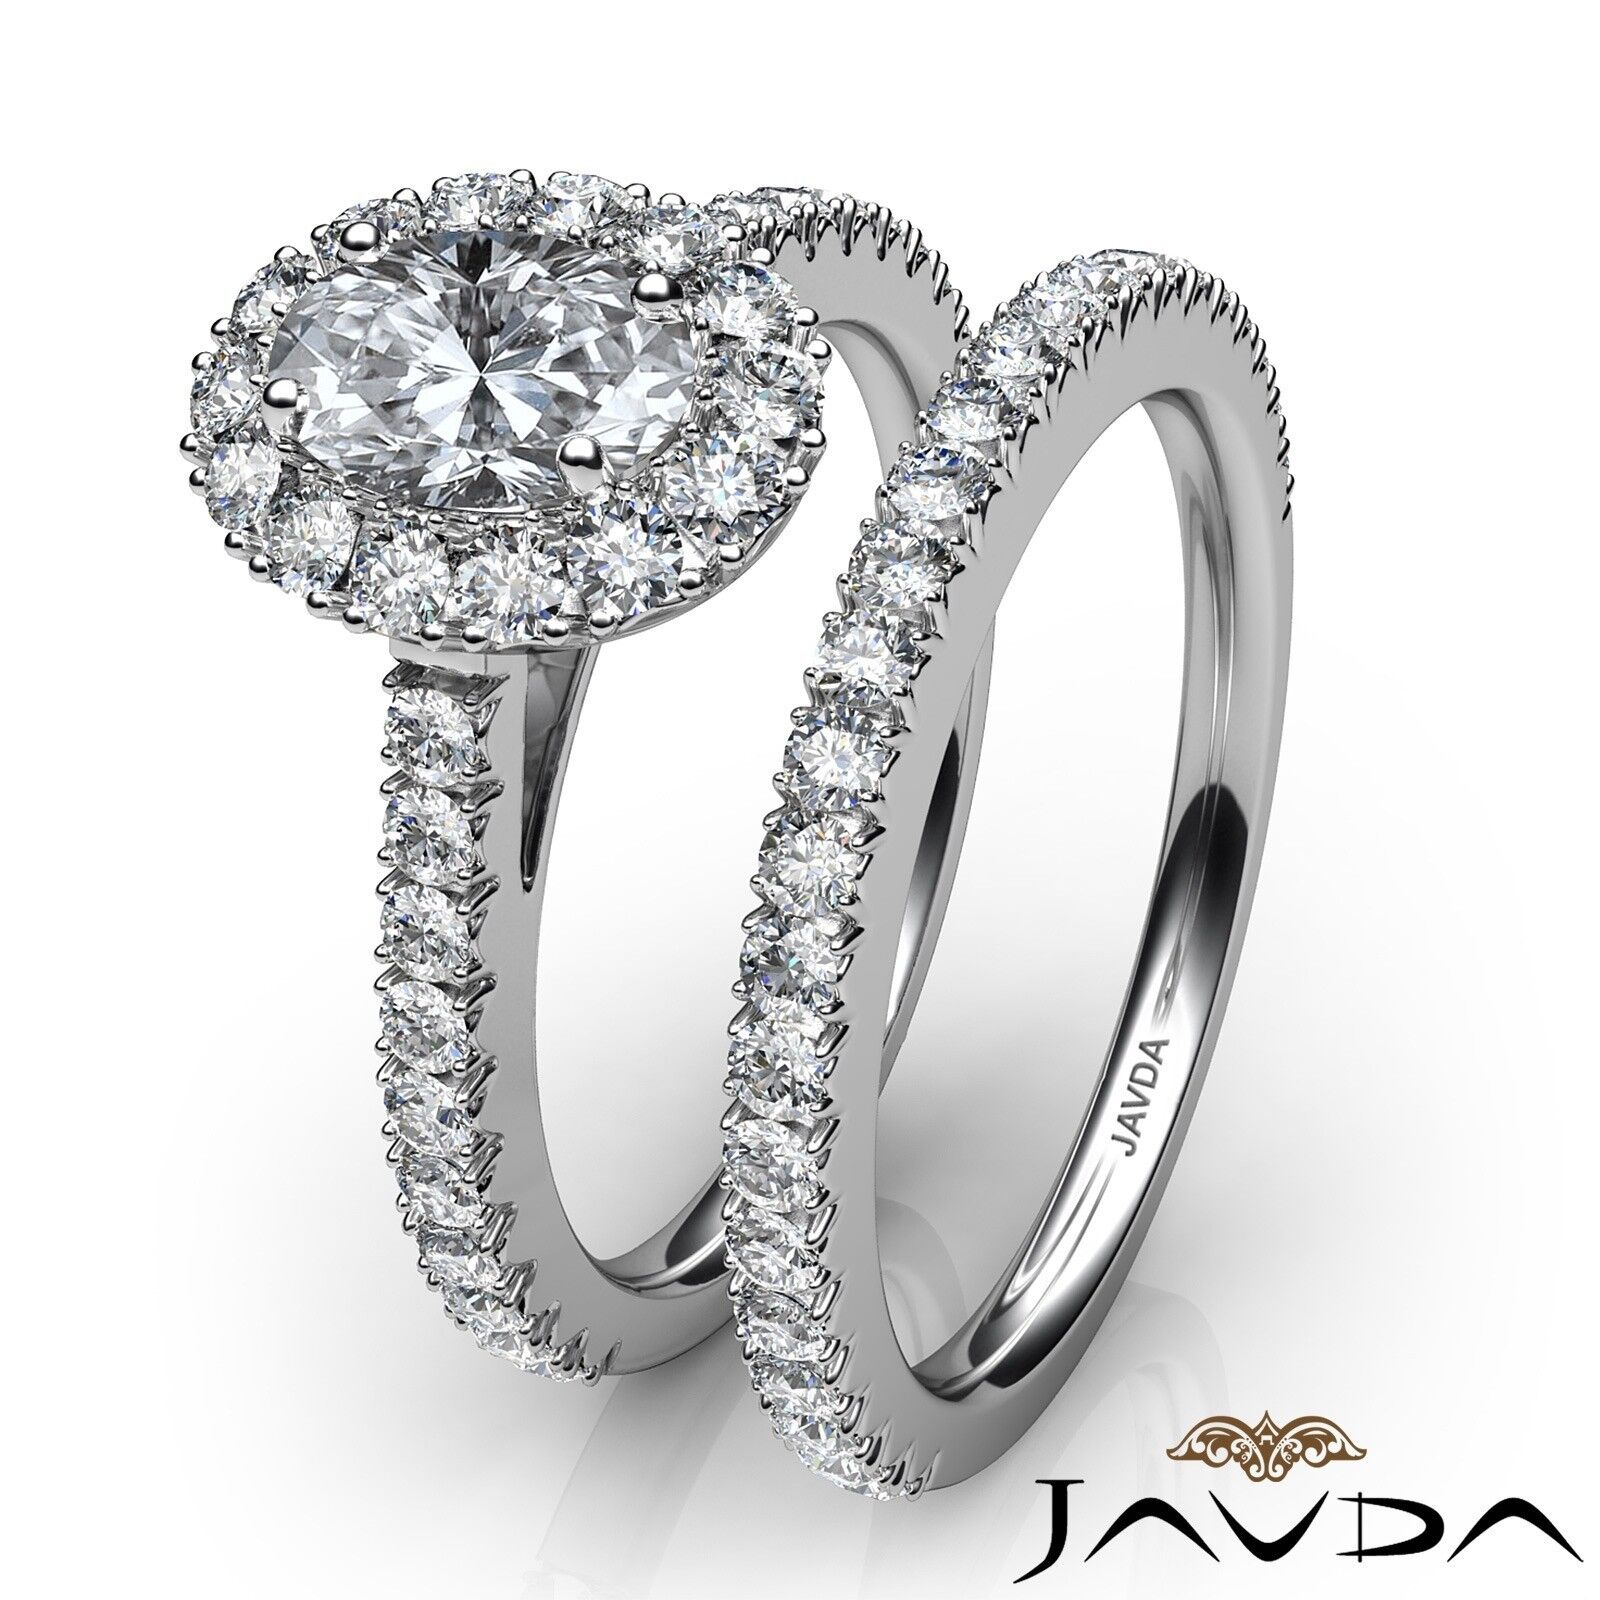 2.21ctw Halo Bridal French Pave Oval Diamond Engagement Ring GIA F-VVS2 W Gold 3